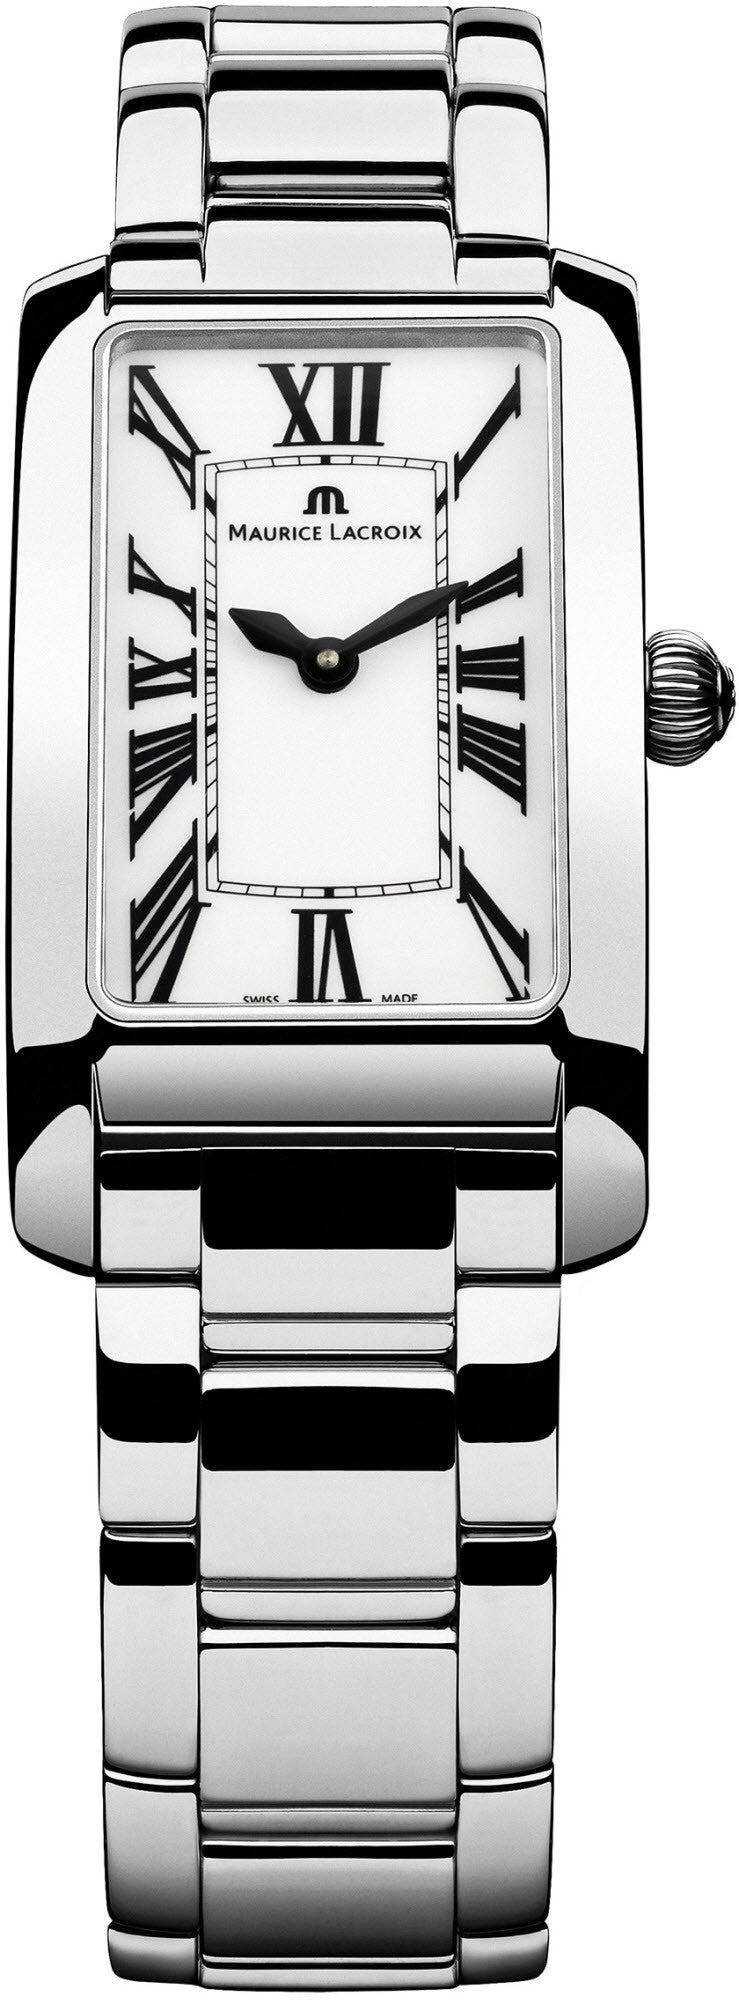 Maurice Lacroix Watch Fiaba D